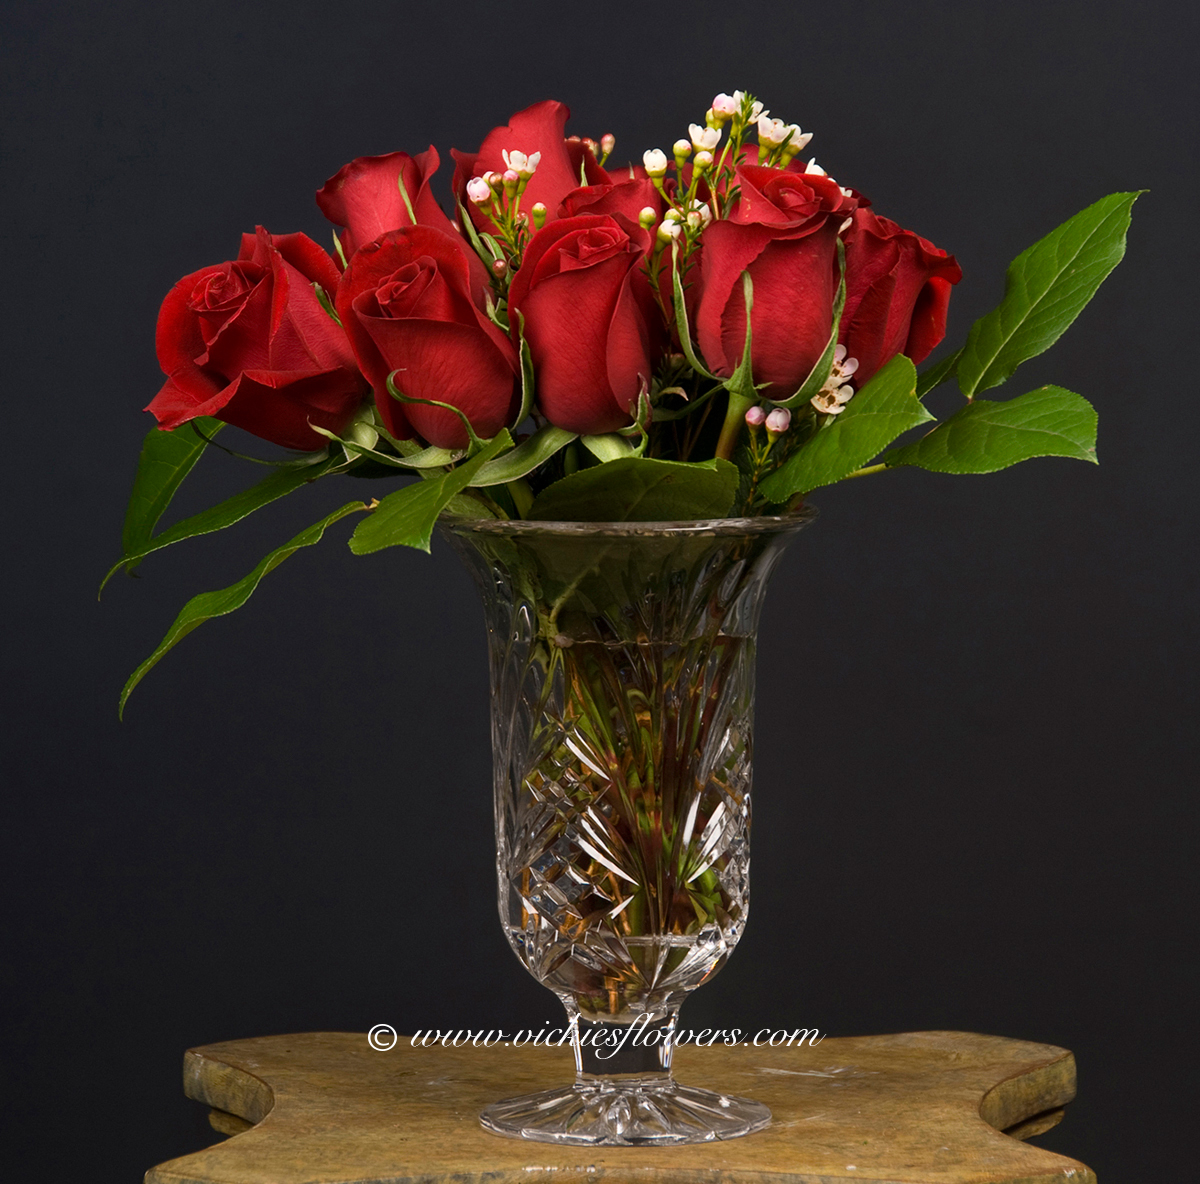 Fresh roses delivered today vickies flowers brighton co best roses r 010 75 plus tax and delivery one dozen red roses with wax flower in crystal vase vase may vary reviewsmspy